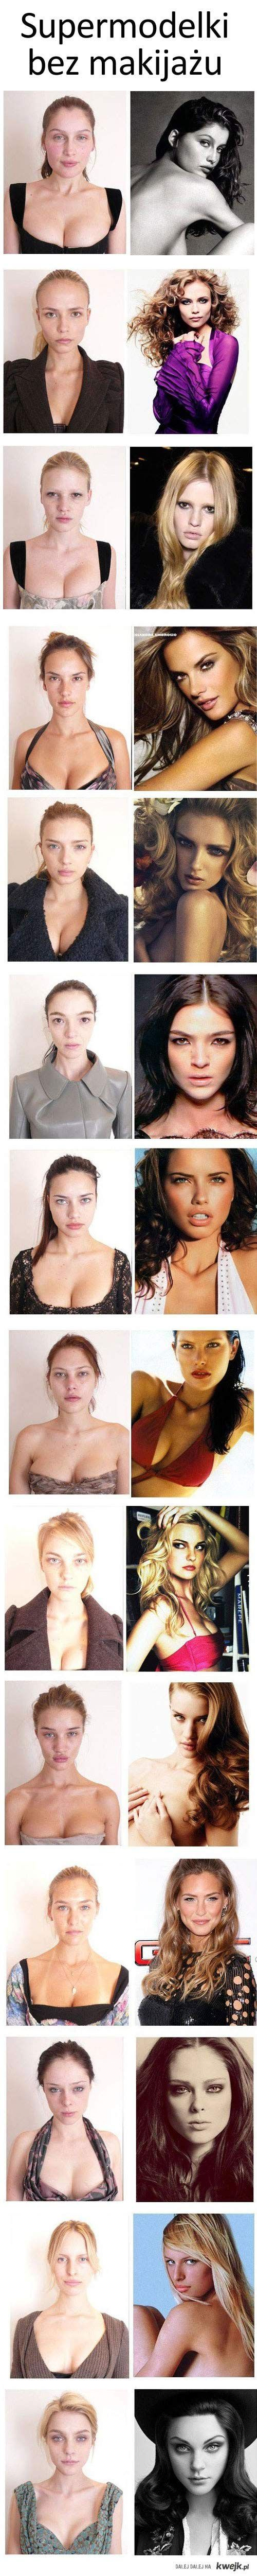 Supermodels without makeup.  Anyone can be beautiful with the right makeup artists and hair stylists.